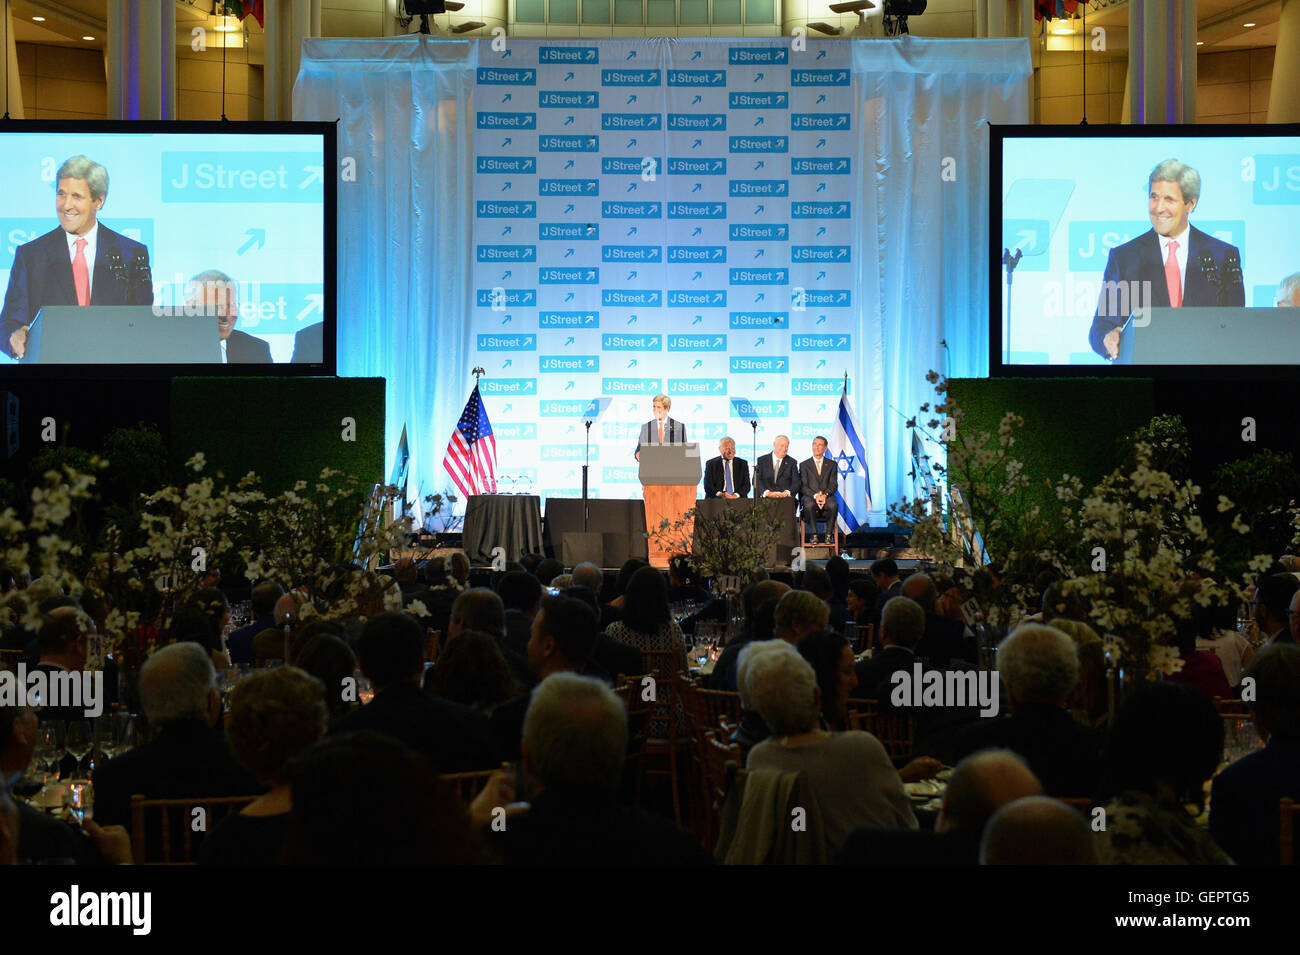 Secretary Kerry Delivers Remarks at the J Street 2016 National Gala in Washington - Stock Image